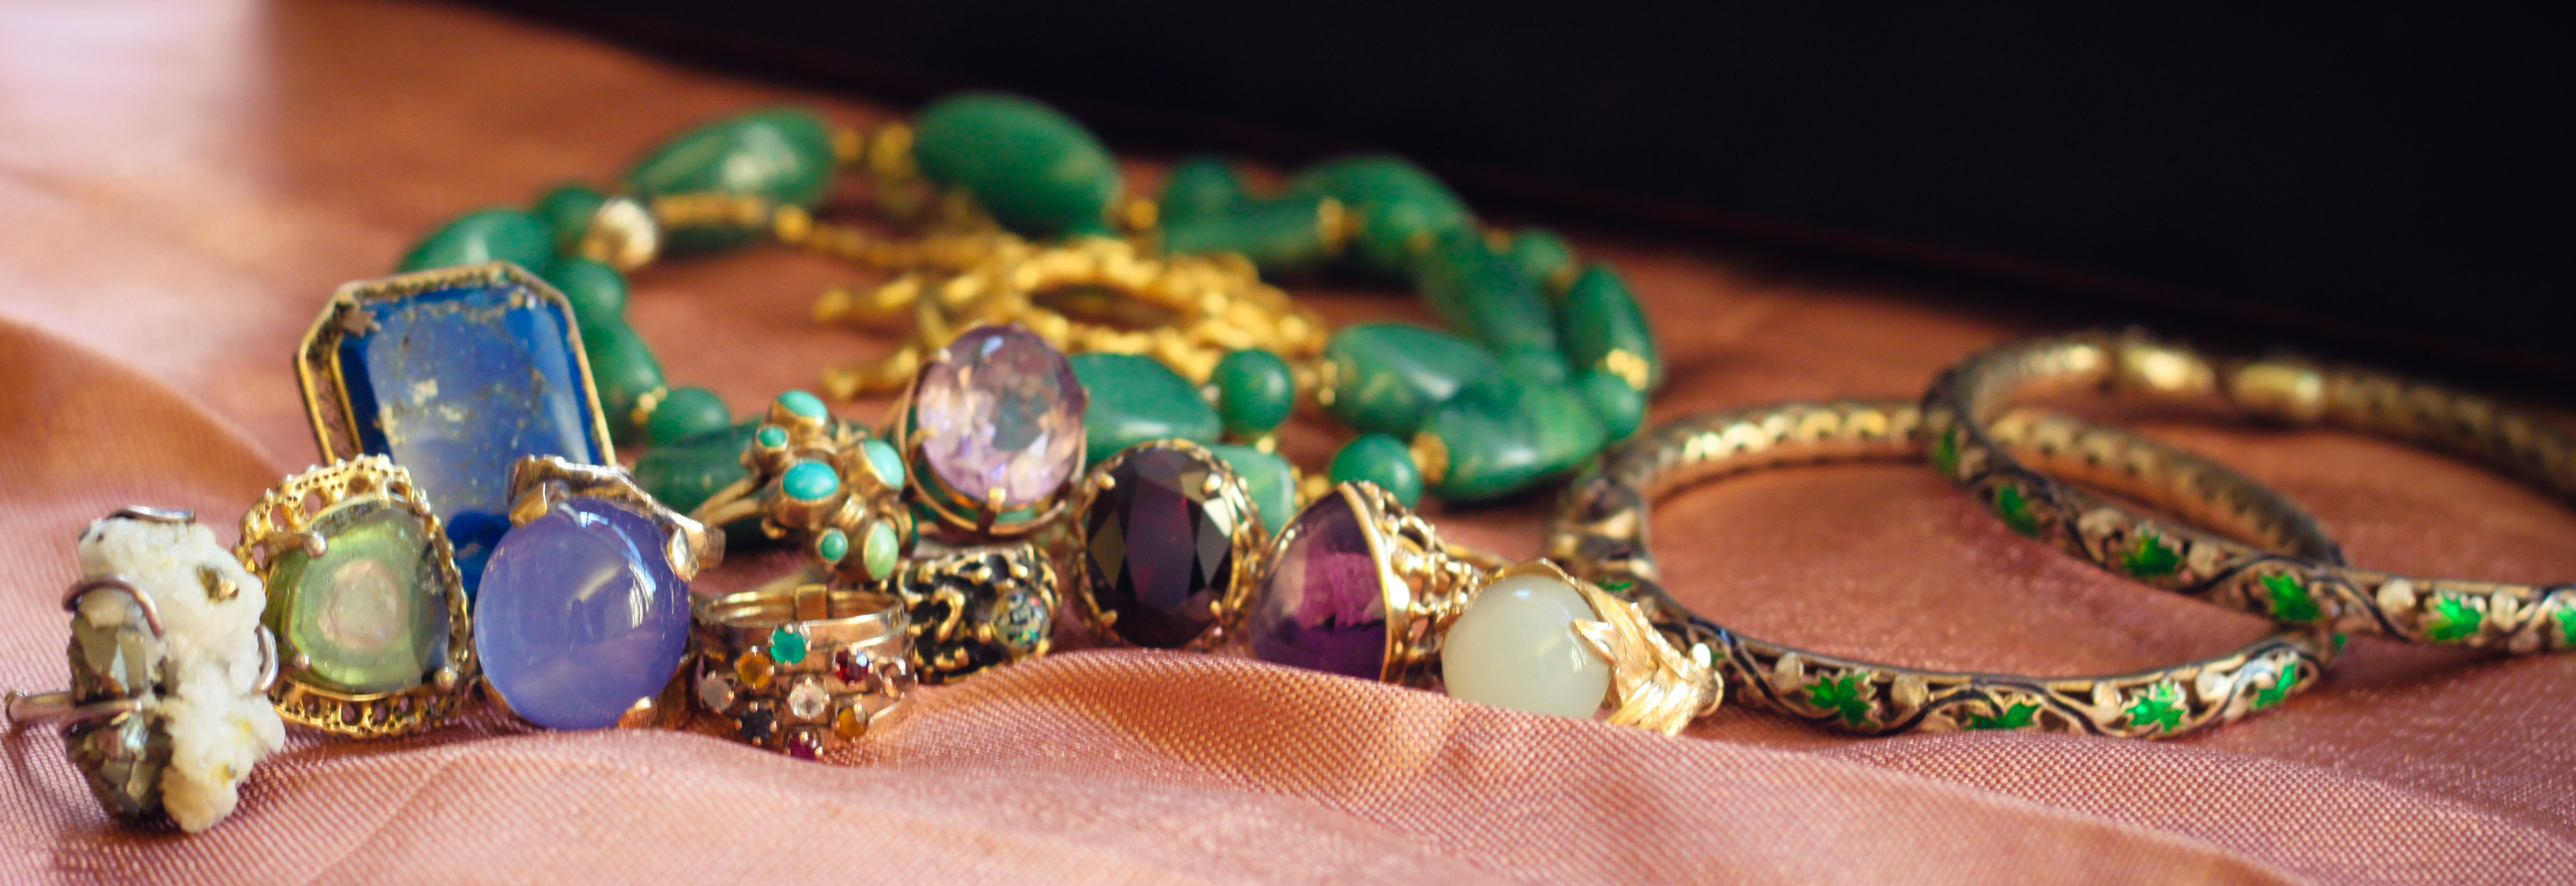 jewelry sale hospice of santa barbara to host estate jewelry sale 5687